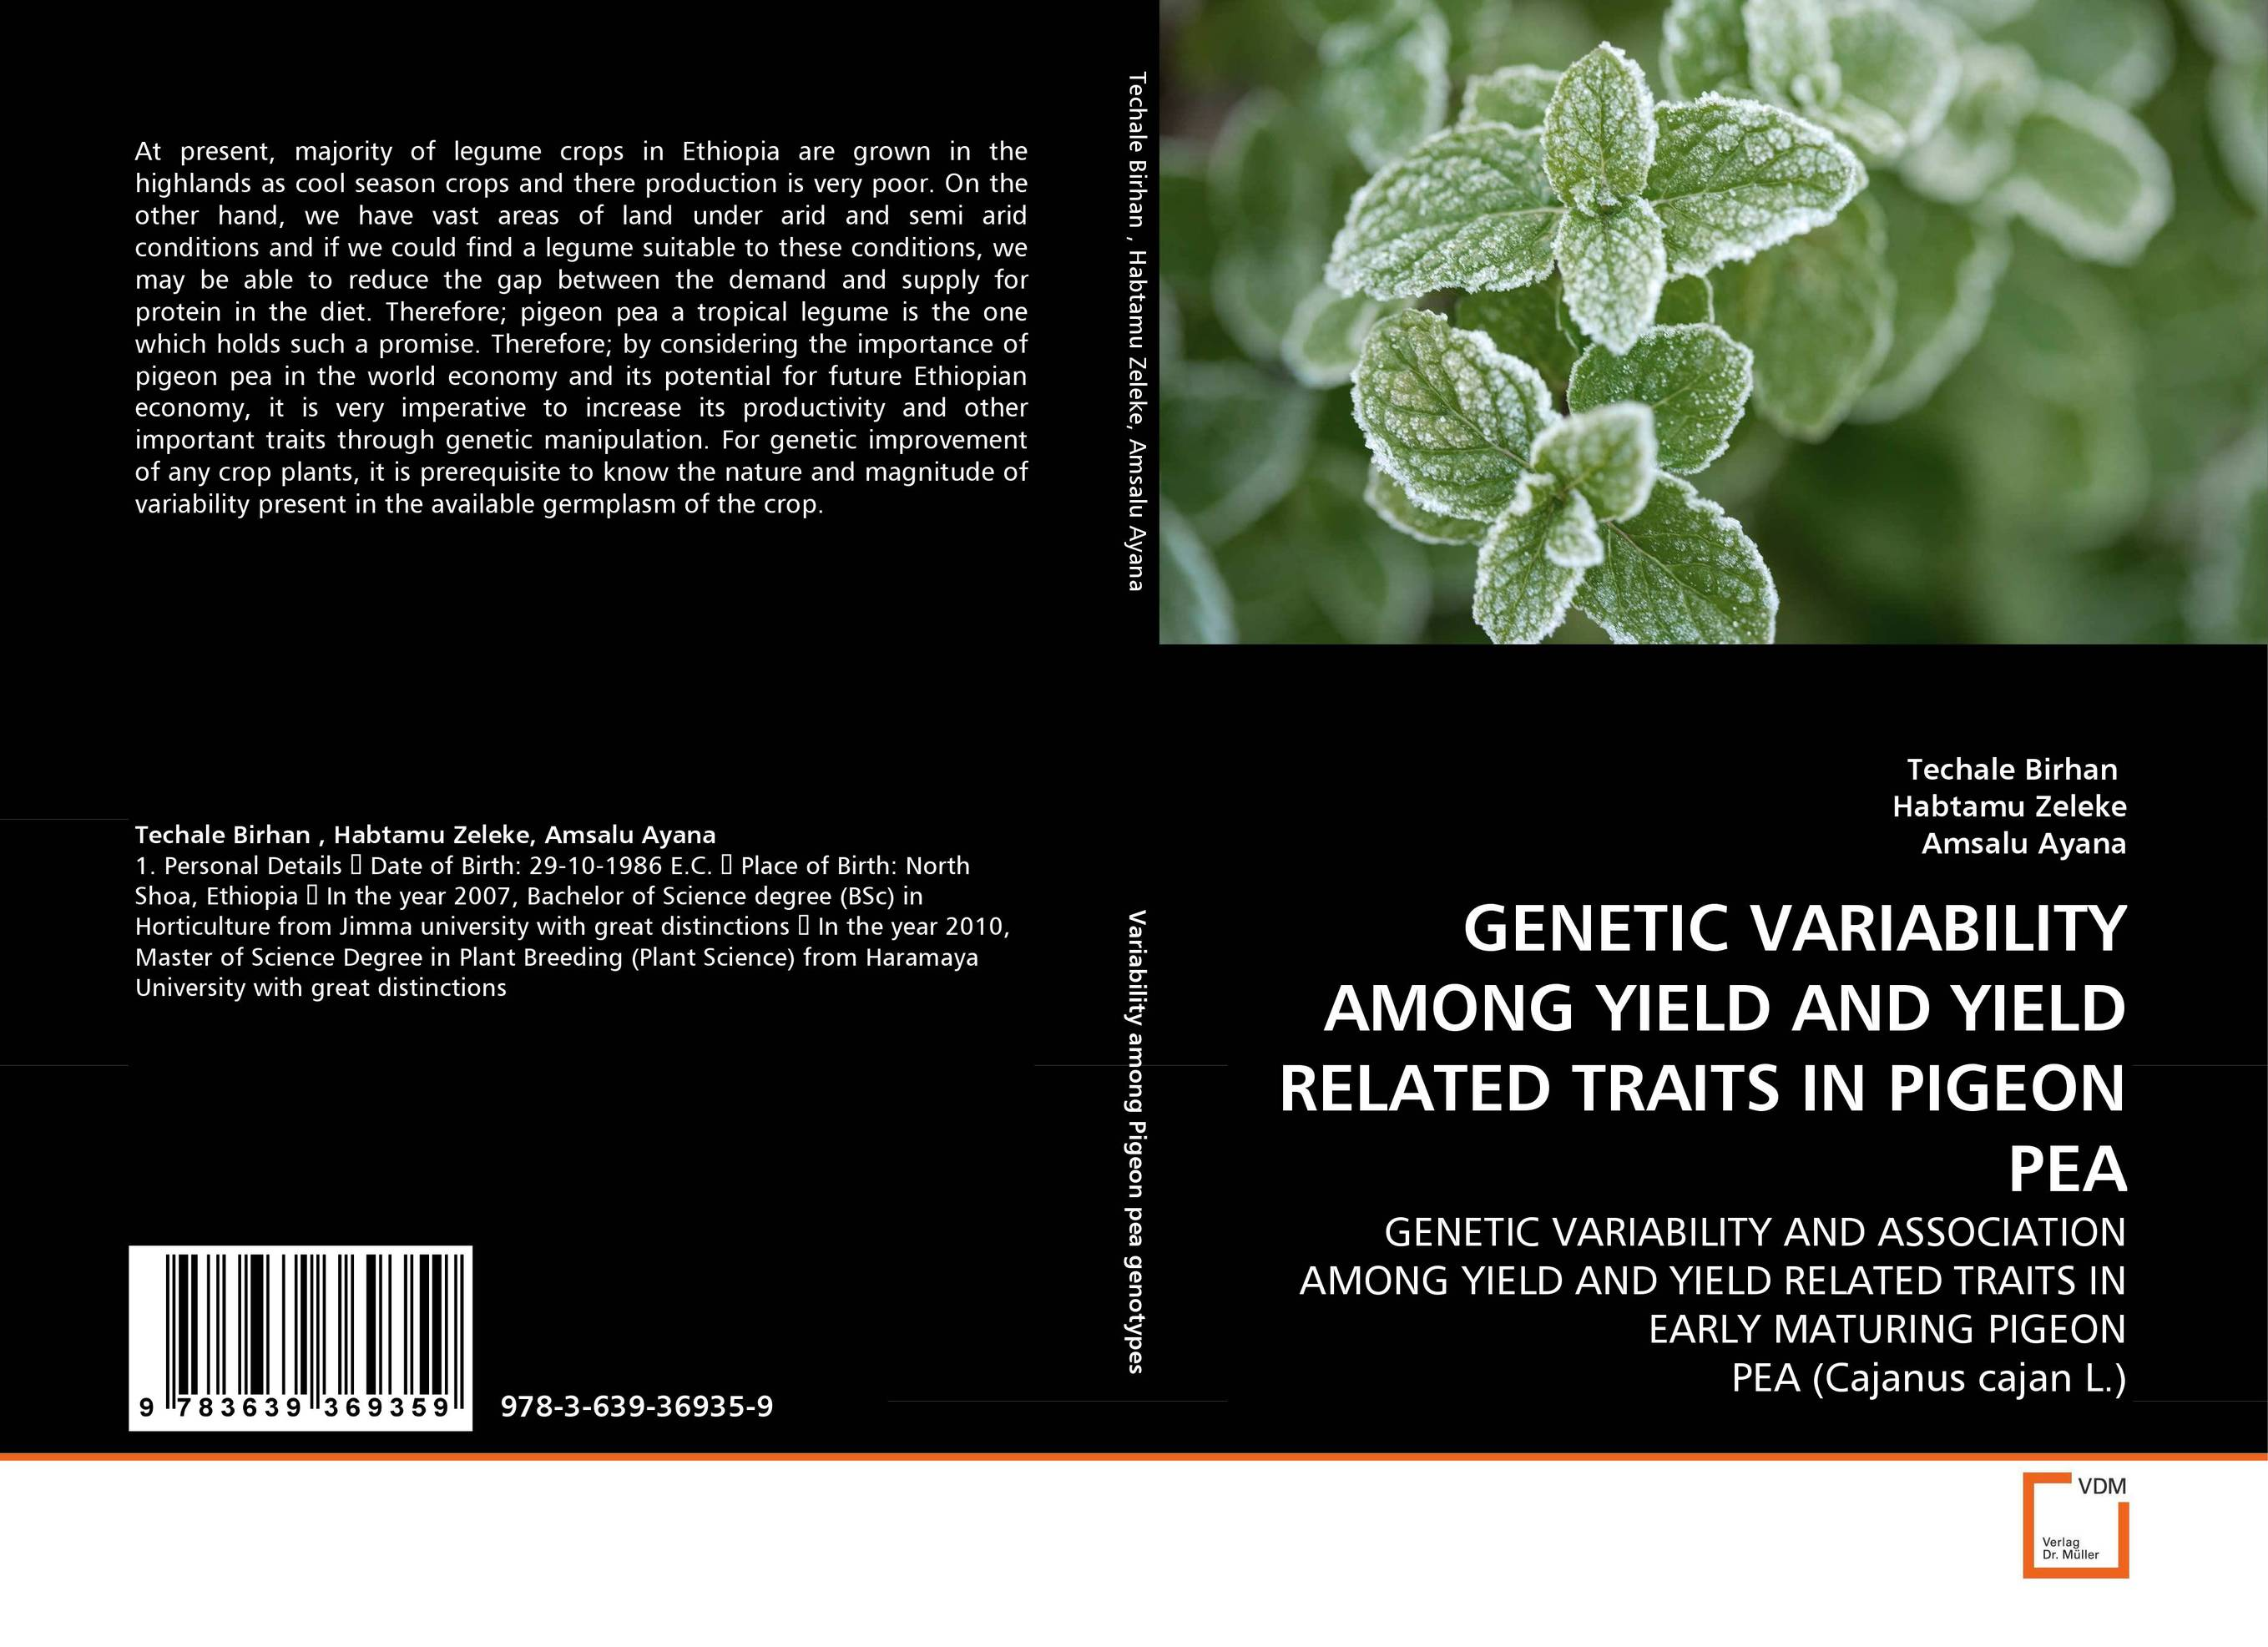 GENETIC VARIABILITY AMONG YIELD AND YIELD RELATED TRAITS IN PIGEON PEA mylsamy prabhakaran and sanniyasi elumalai application of genetic engineering in pigeon pea crop improvement